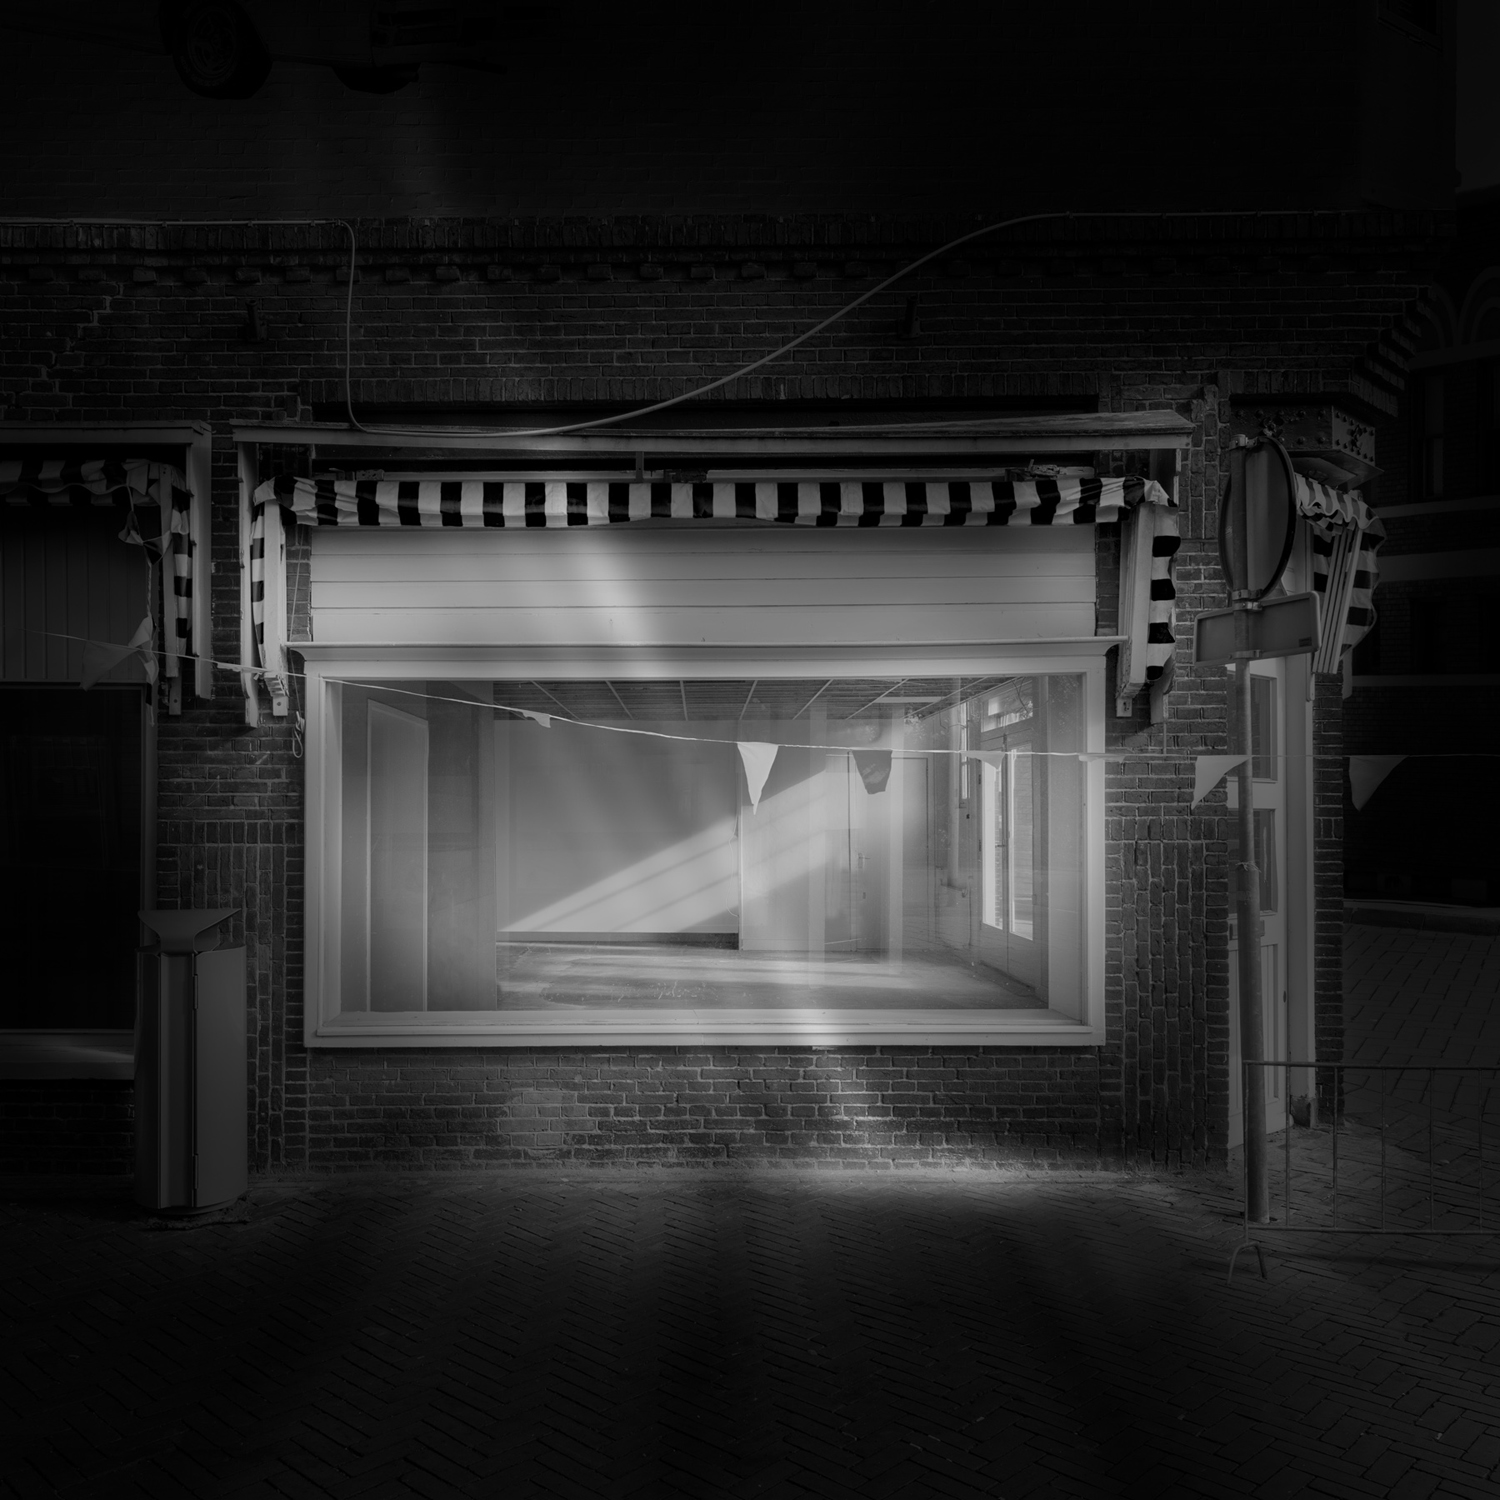 Storefront , 20 x 20 inches, archival pigment print, 2019